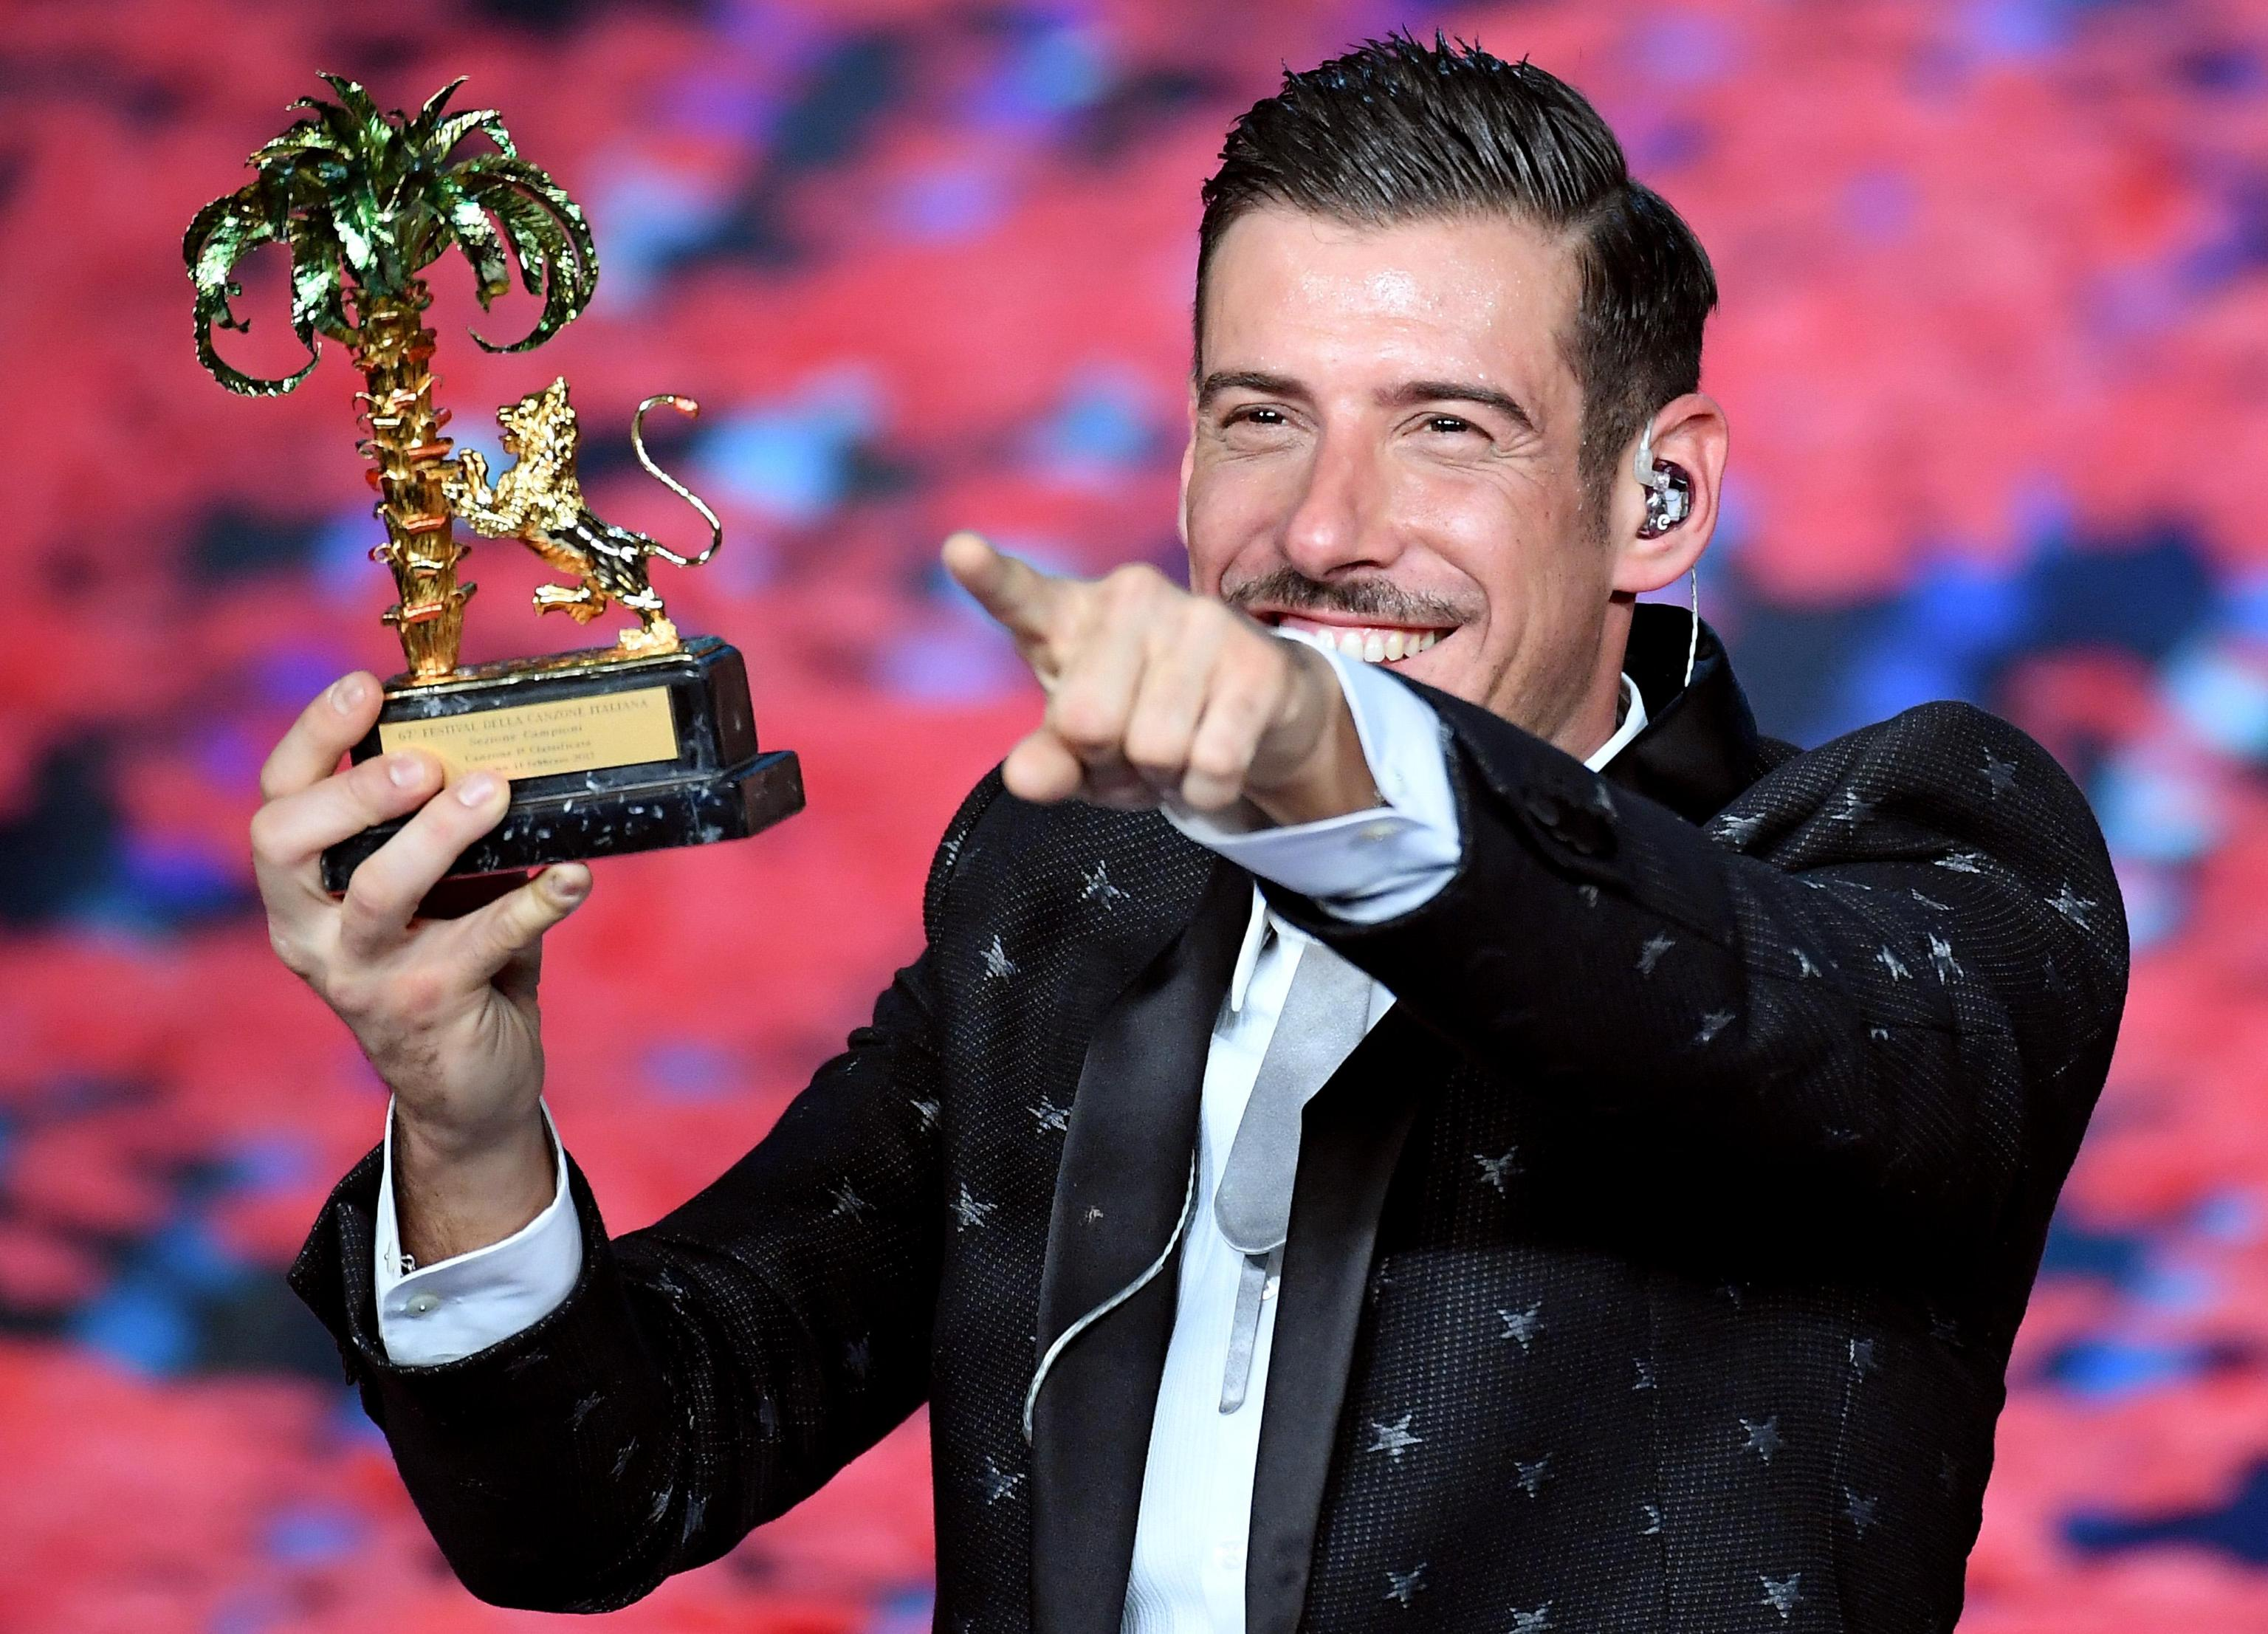 Italy: Sanremo festival dates and director are revealed!